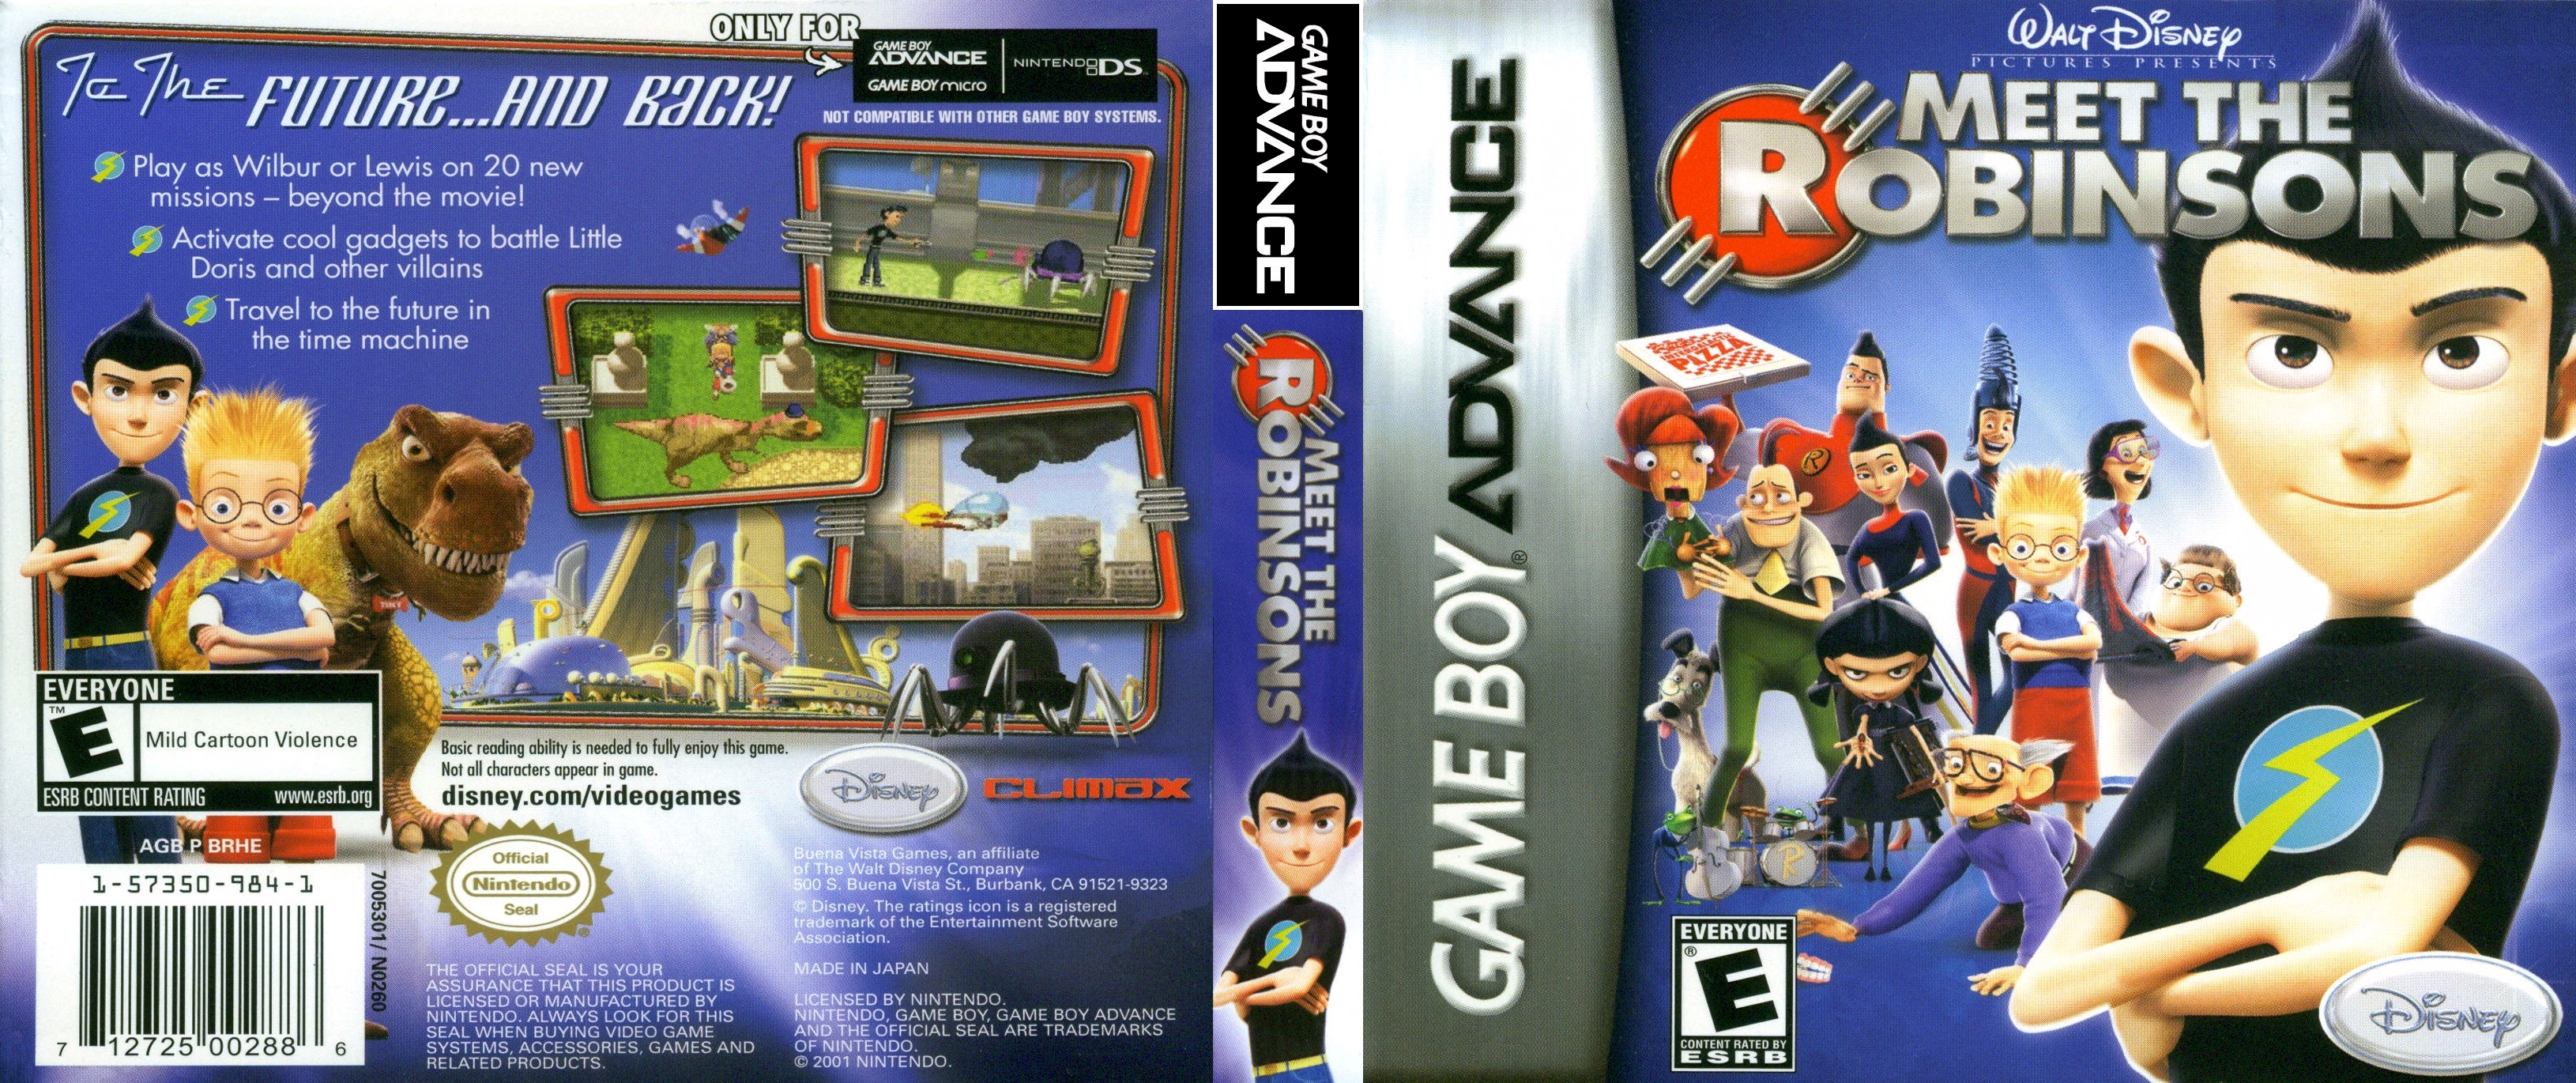 meet the robinsons pc game